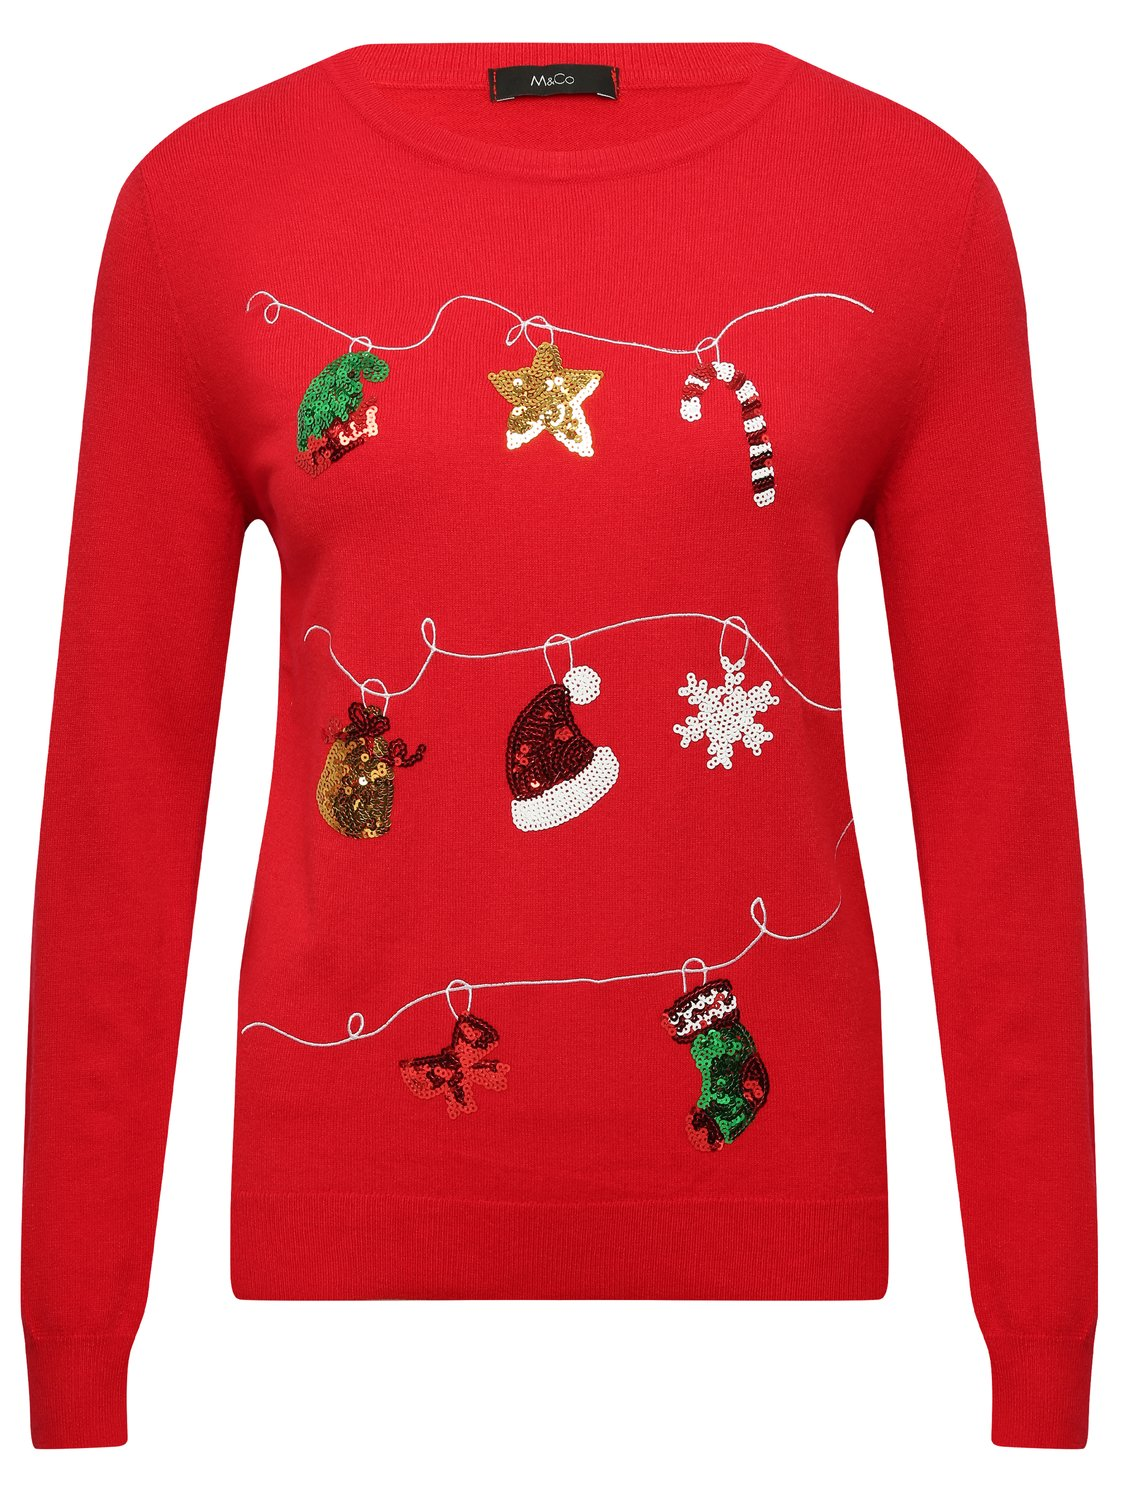 Children's Clothing Festive christmas decoration jumper  - Red